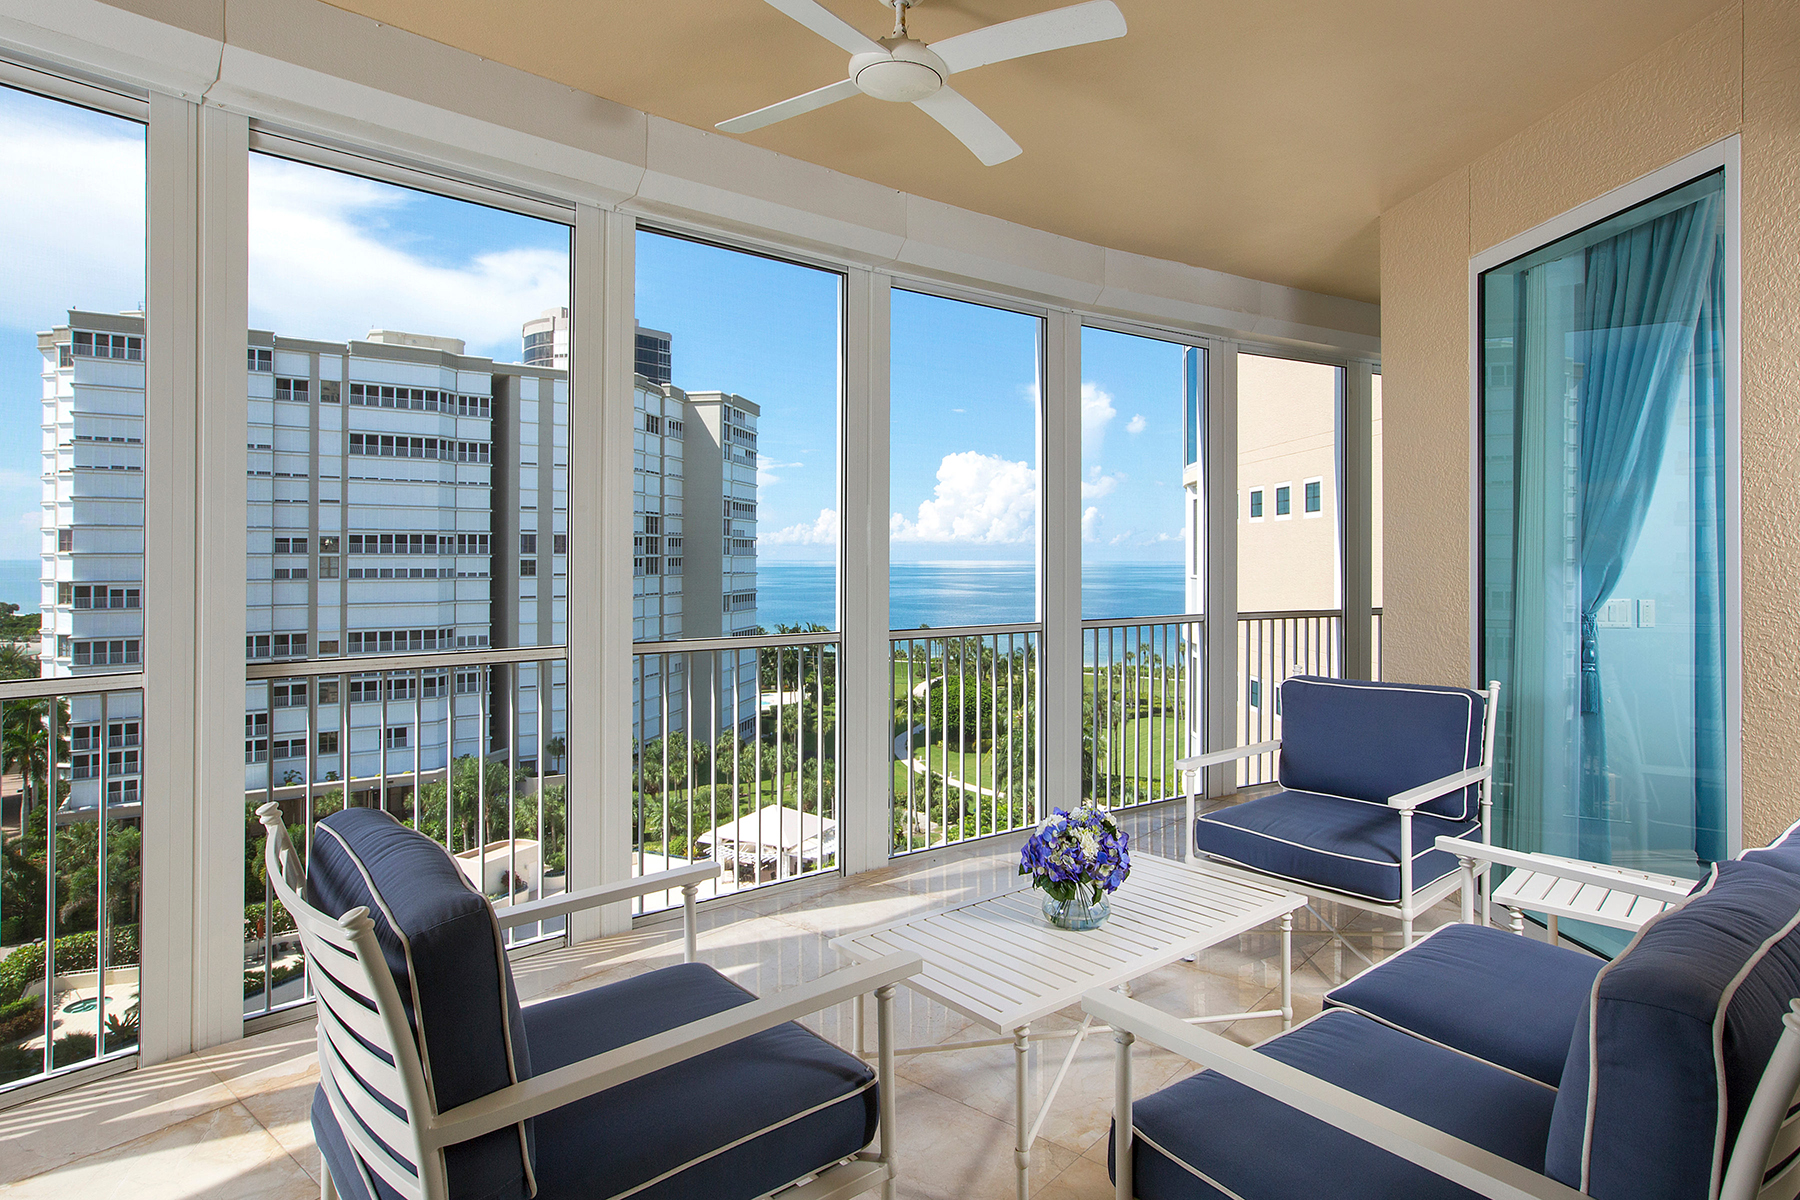 Condominium for Sale at PARK SHORE - ARIA 4501 Gulf Shore Blvd N Unit 901 Naples, Florida, 34103 United States